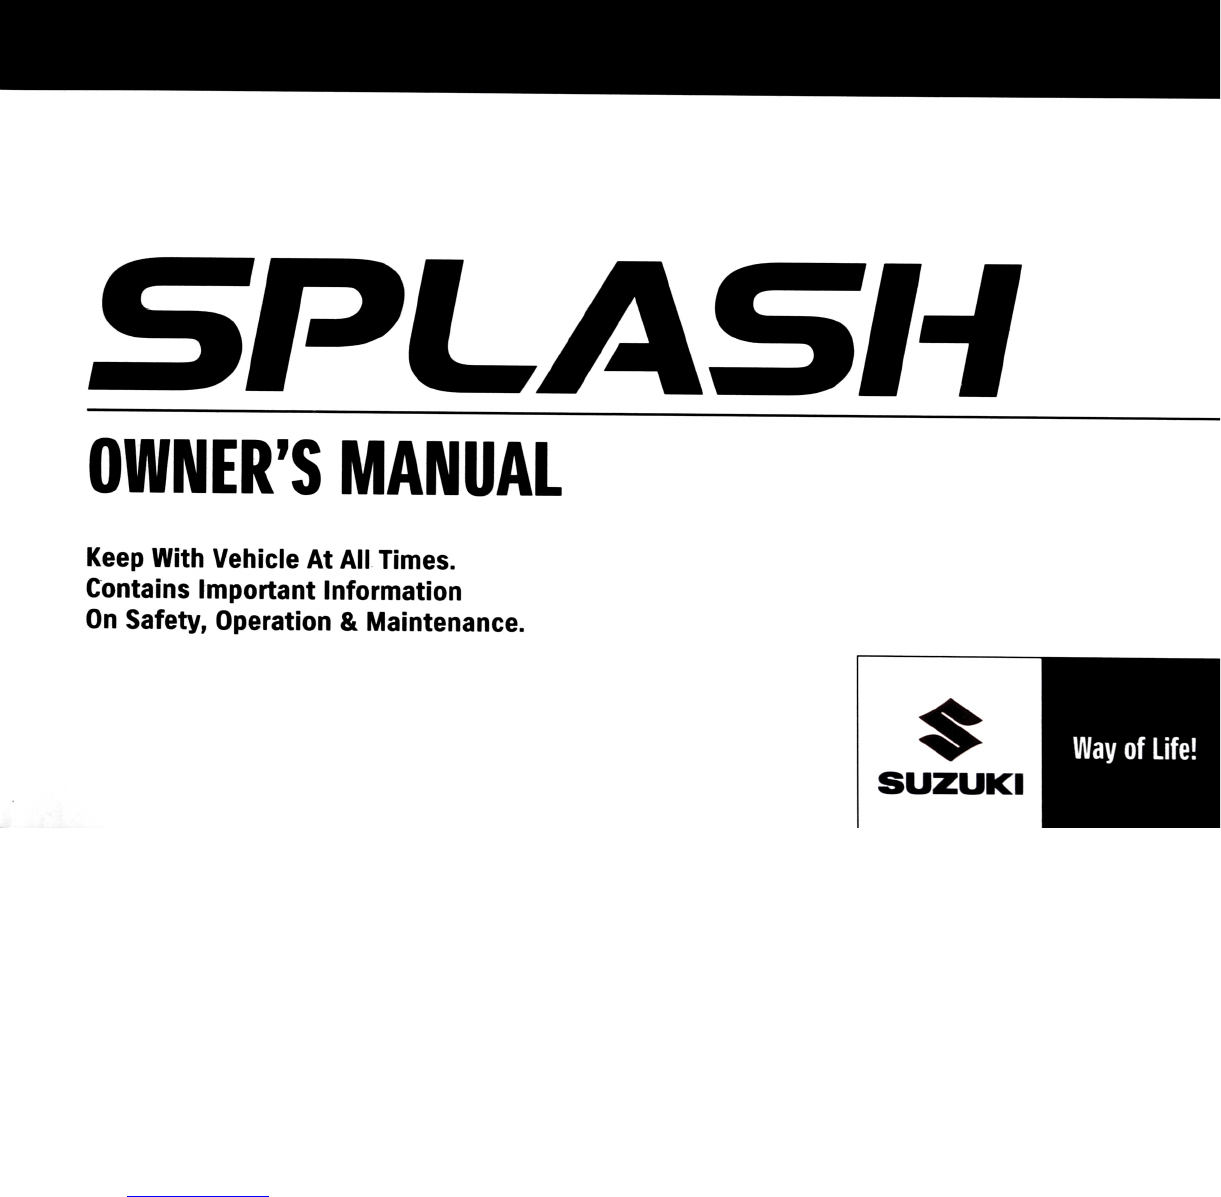 Suzuki Splash 2012 Owners Manual PDF